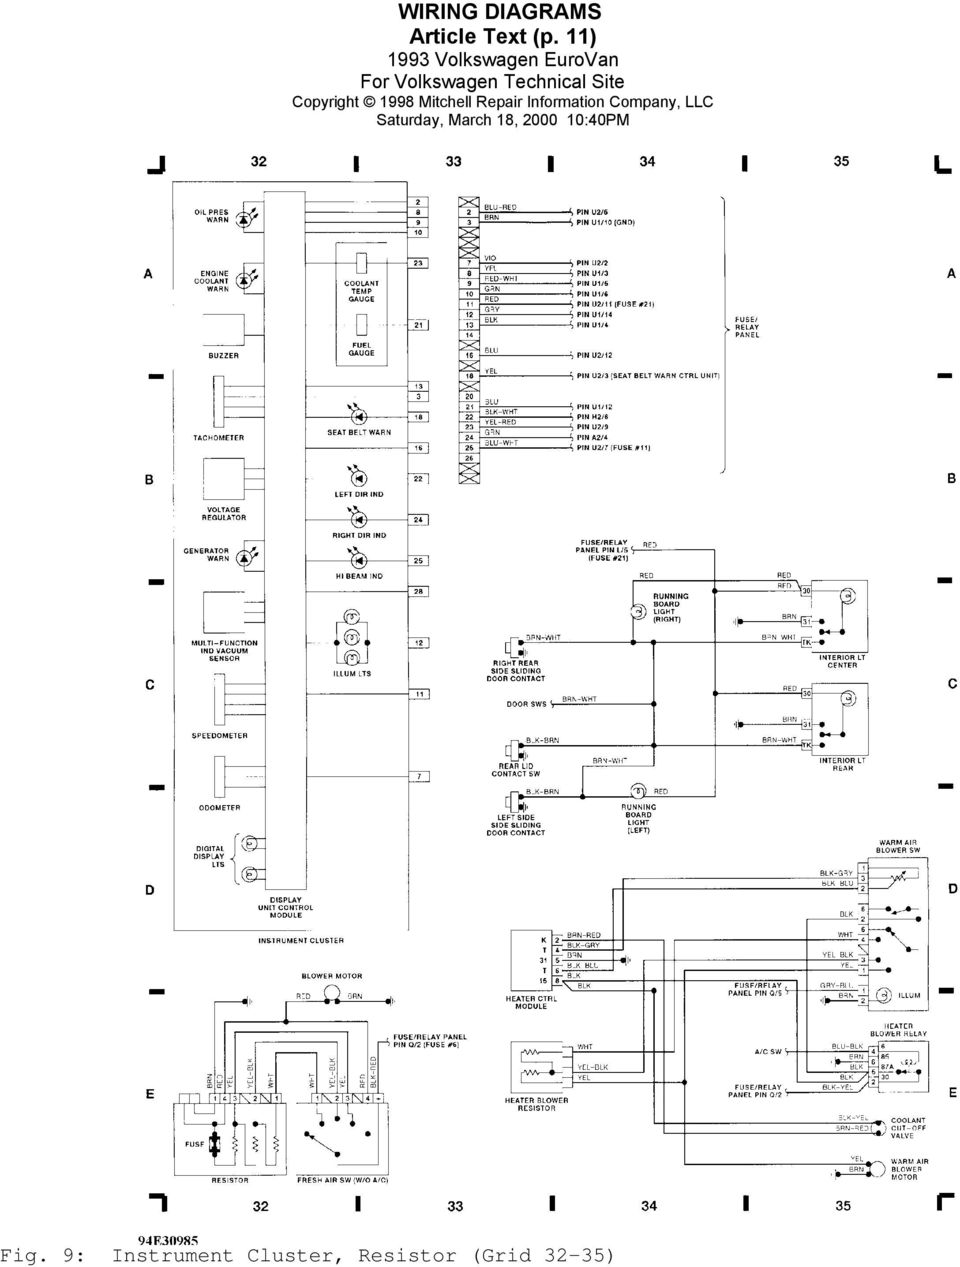 2002 eurovan wiring diagram 93 eurovan wiring diagram 1993 wiring diagrams volkswagen wiring diagrams ...